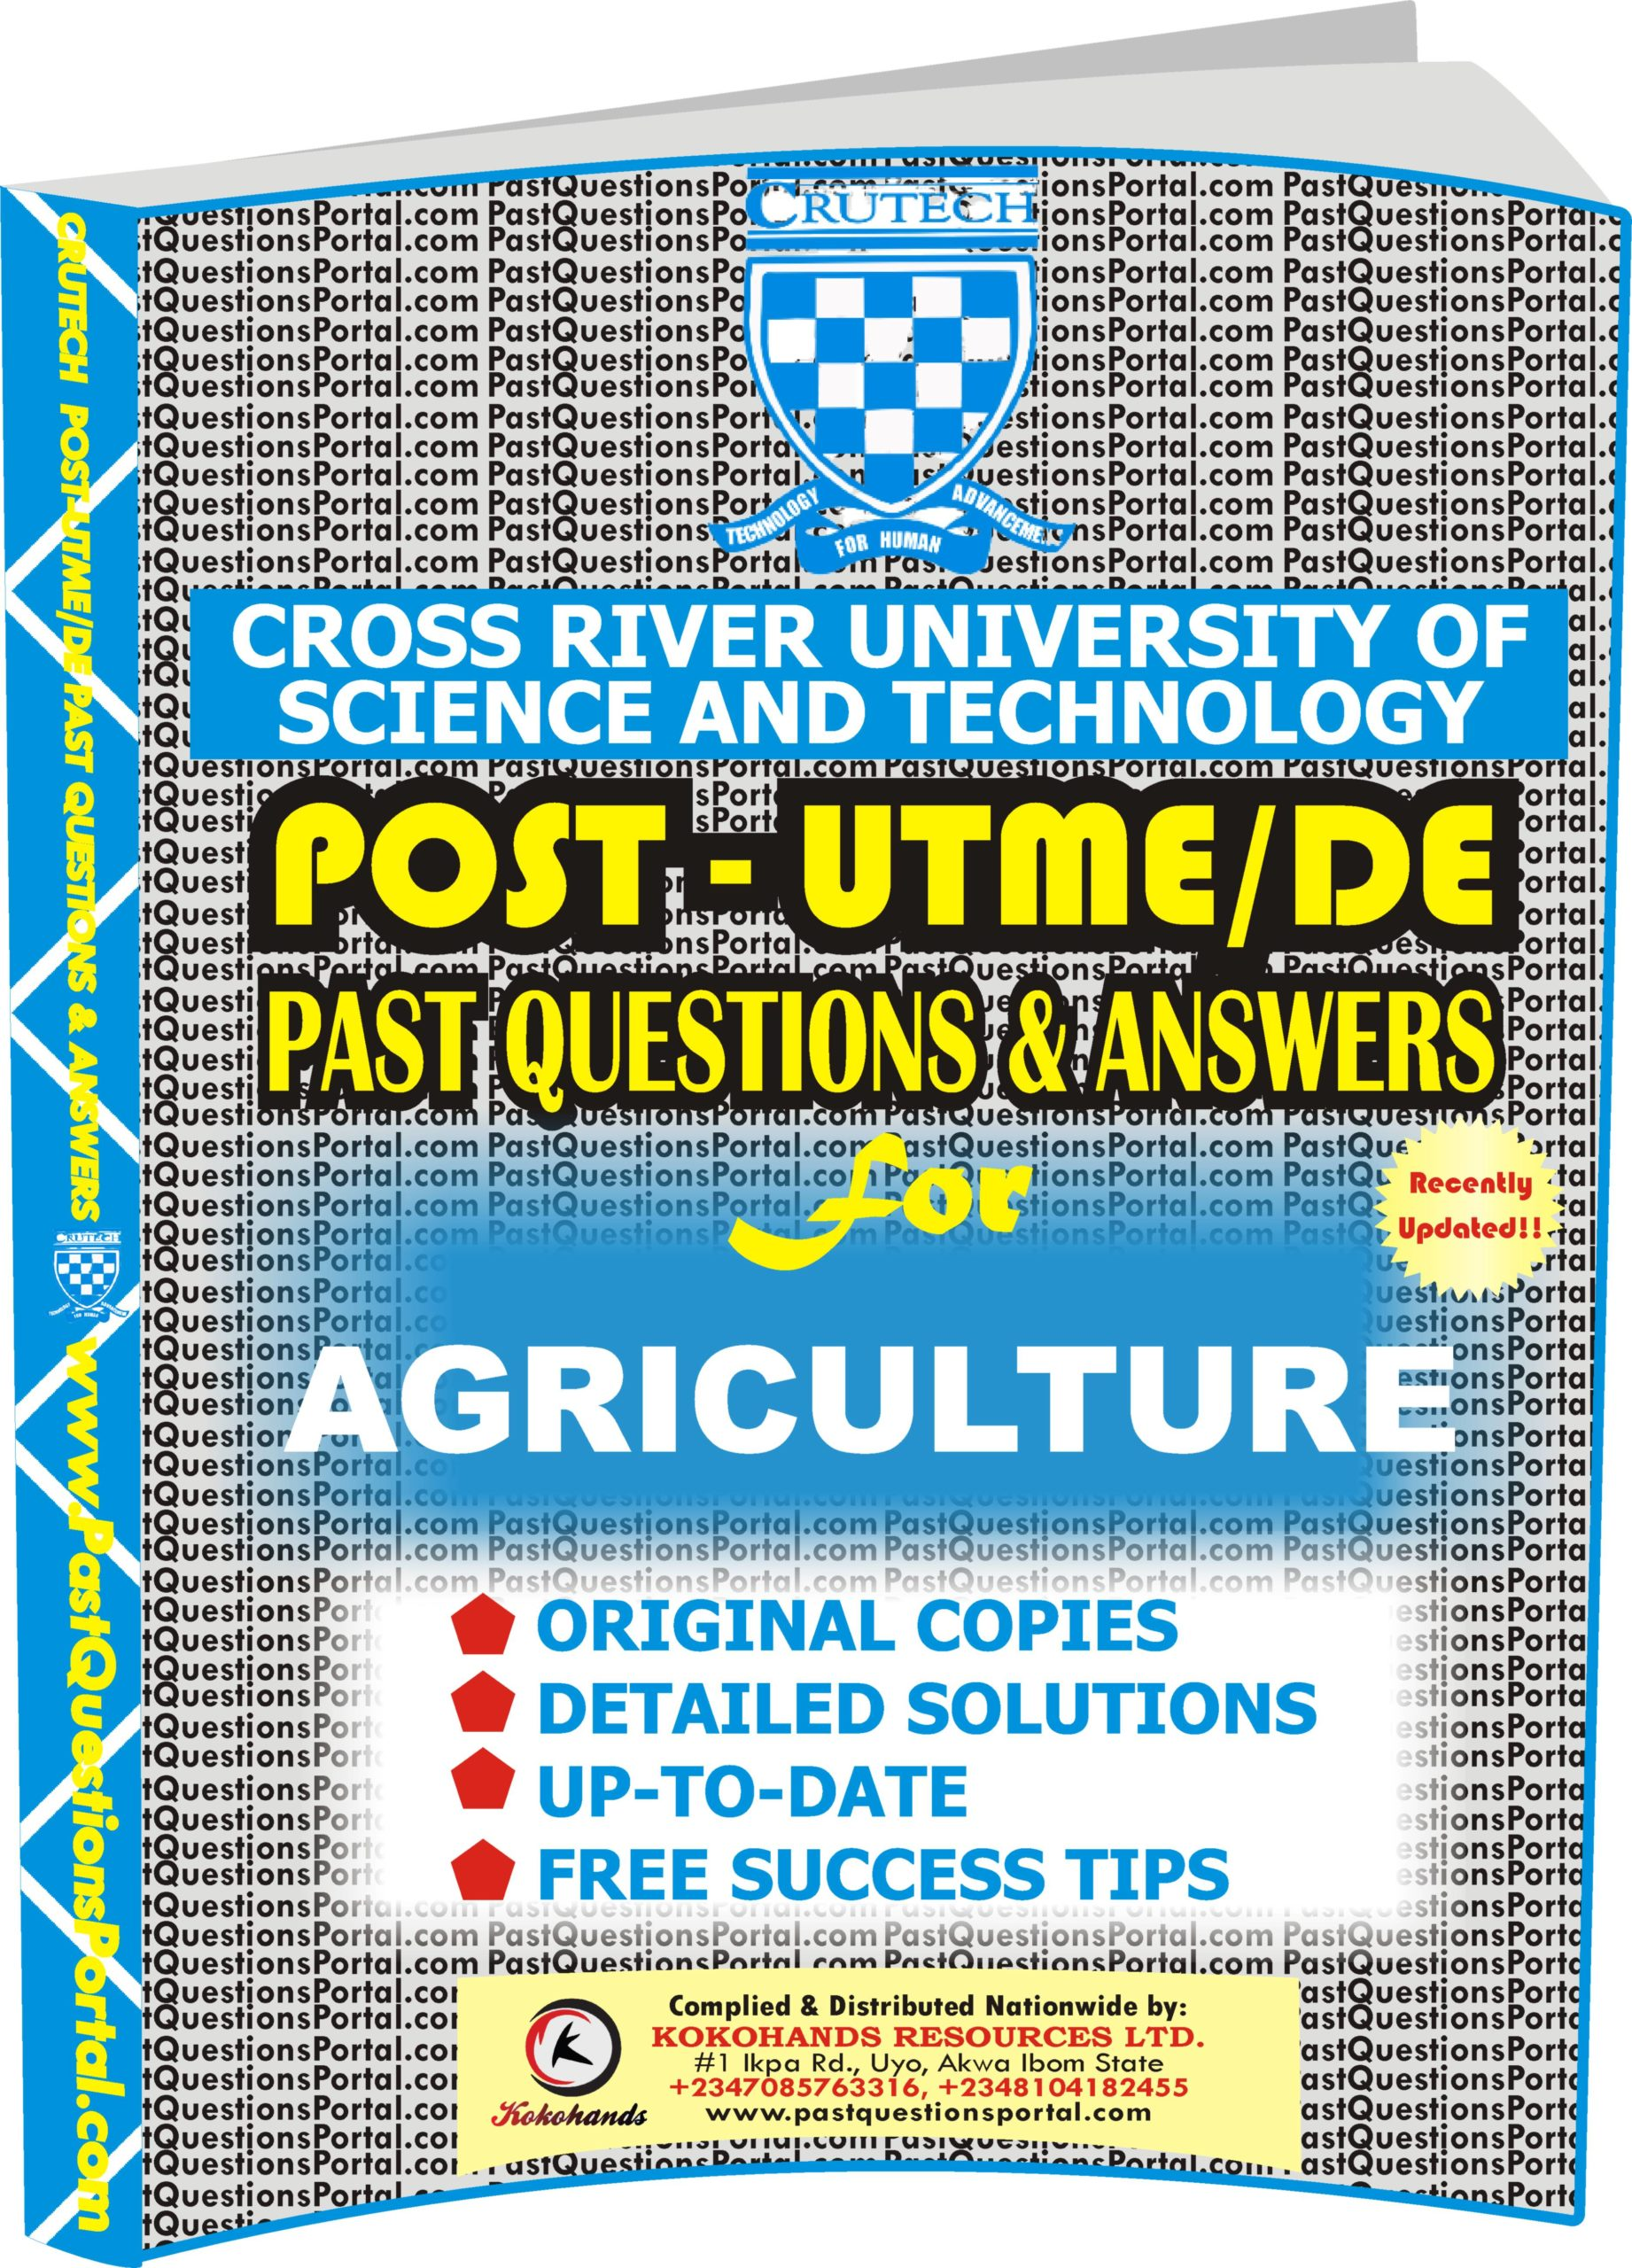 CRUTECH Post UTME Past Questions for AGRICULTURE